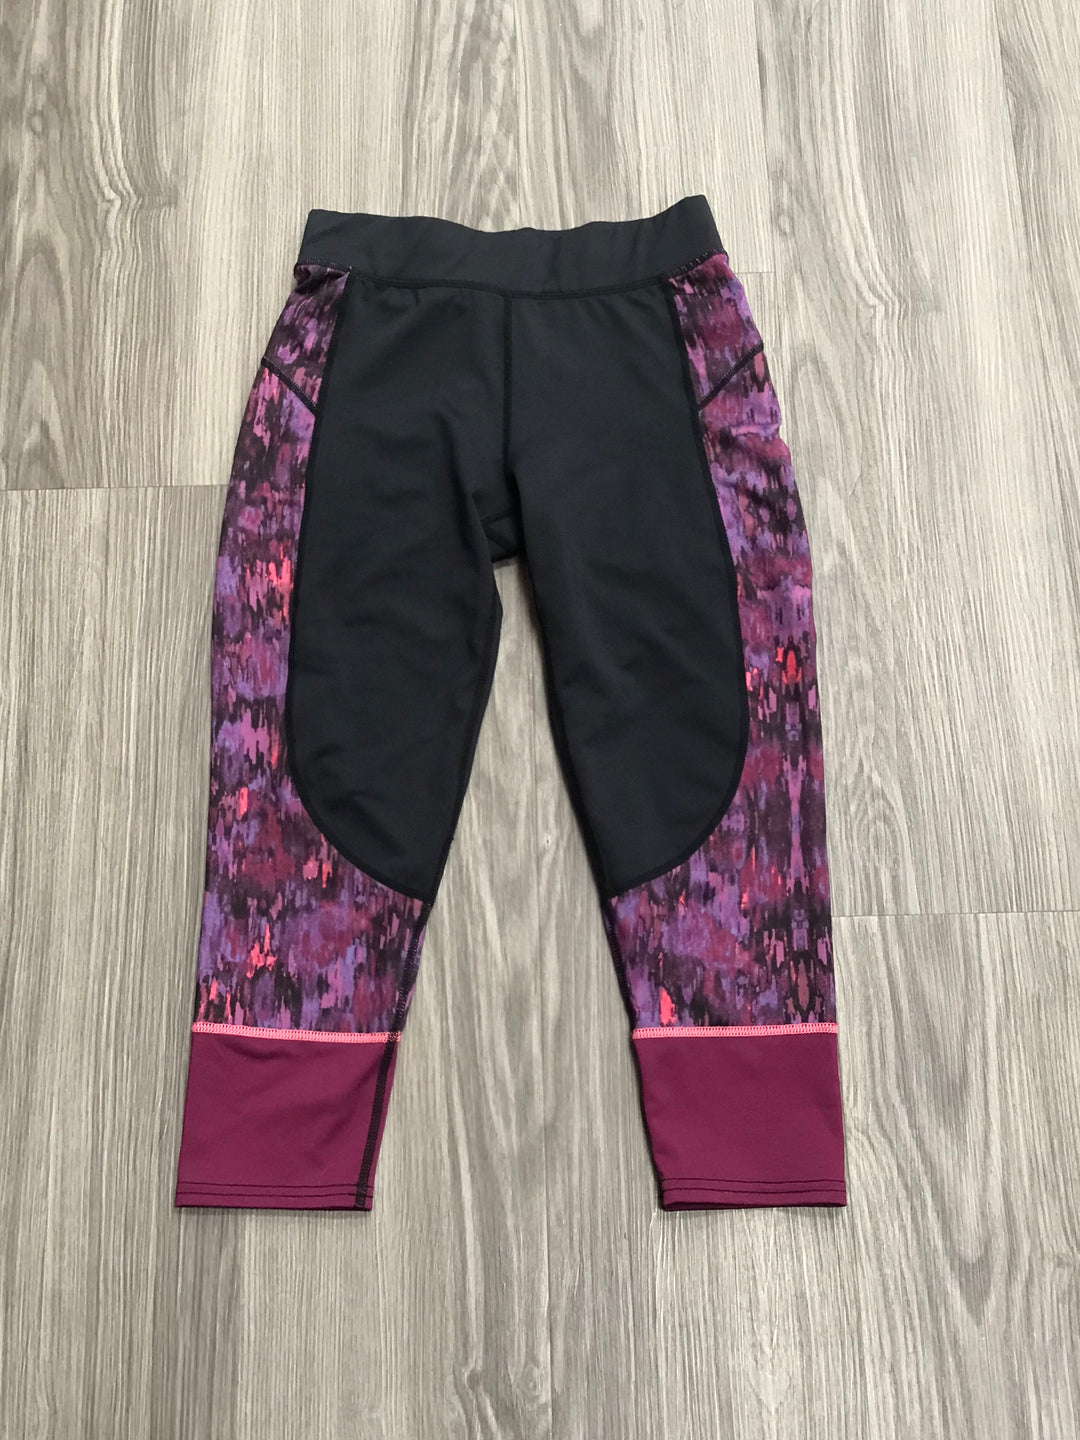 Primary Photo - BRAND: GARAGE <BR>STYLE: ATHLETIC CAPRIS <BR>COLOR: PURPLE <BR>SIZE: XS <BR>SKU: 172-172170-76105